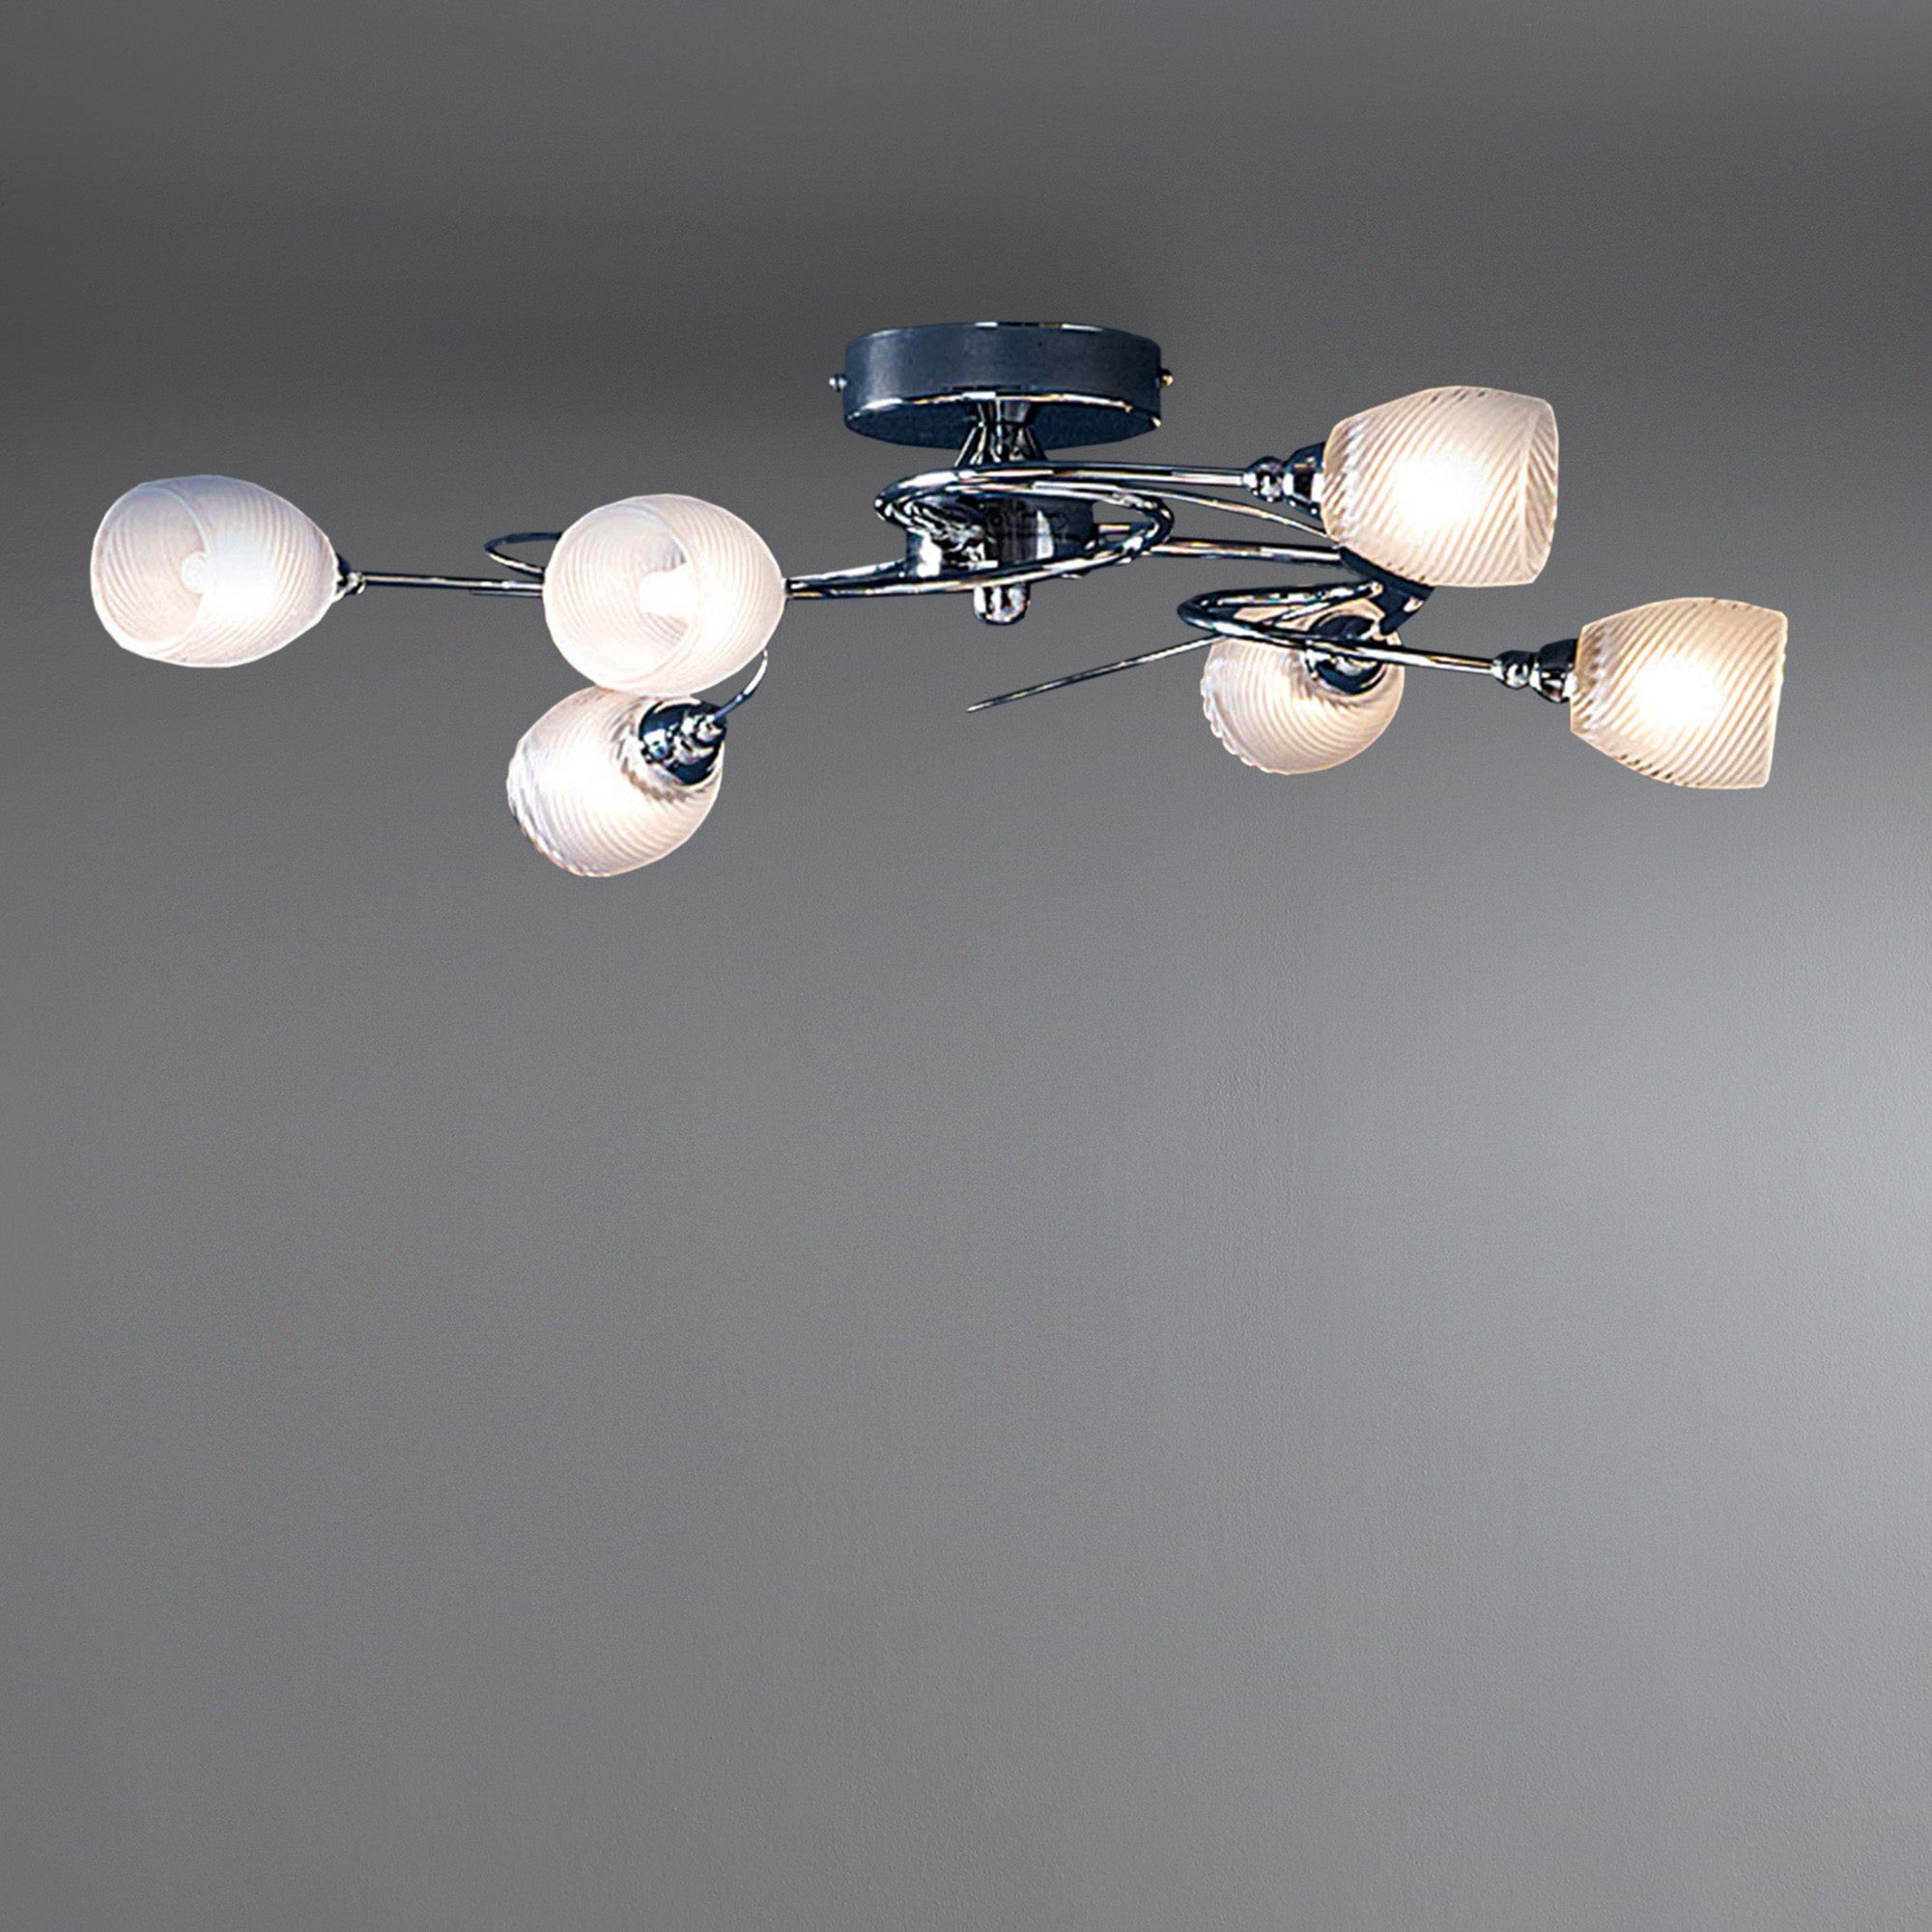 Swirl 6 Light Ceiling Fitting